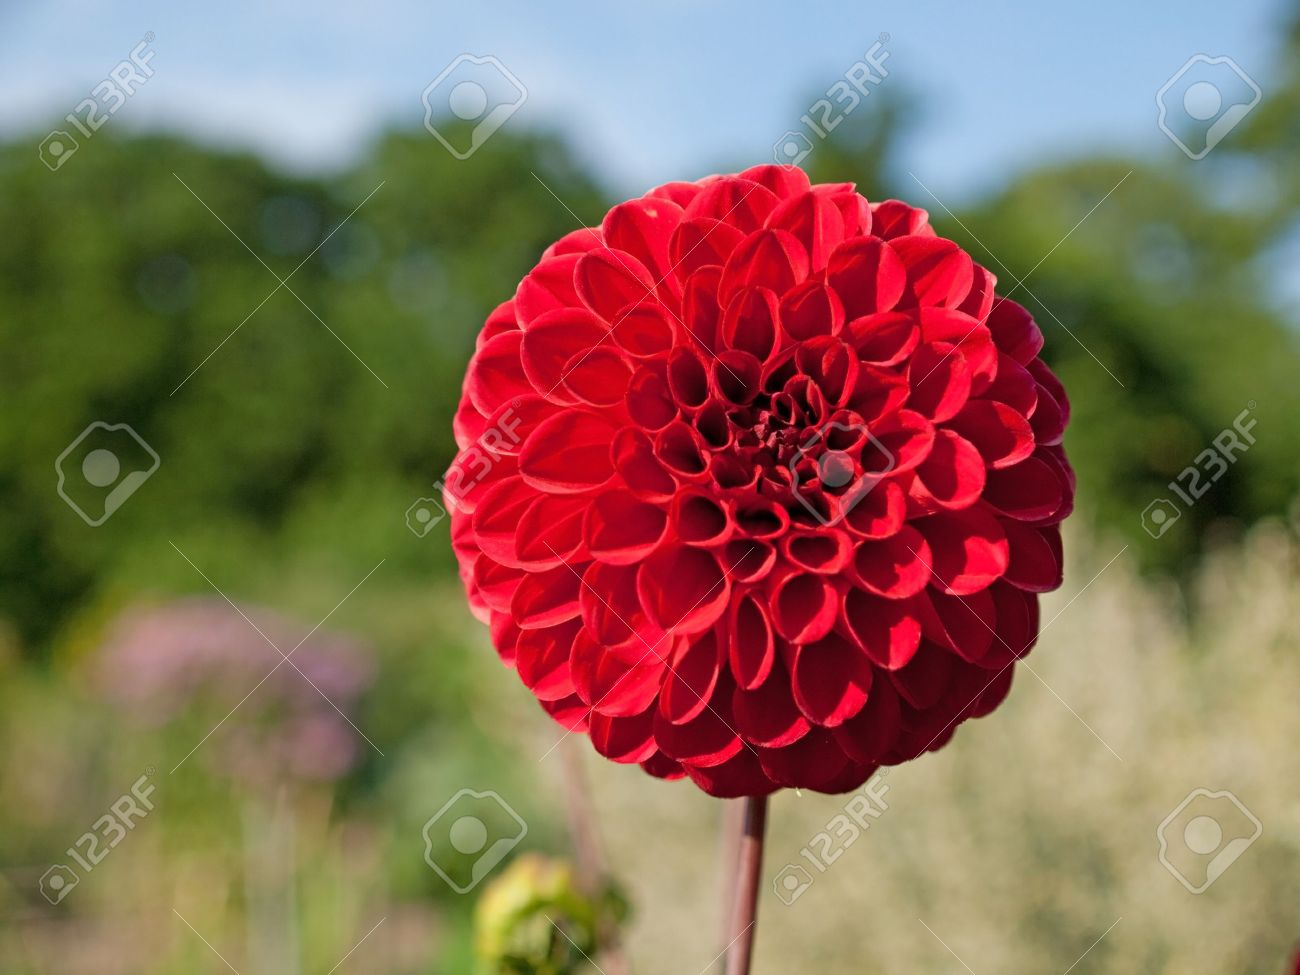 Close Up Of Single Red Dahlia Flower Stock Photo Picture And Royalty Free Image Image 7606845